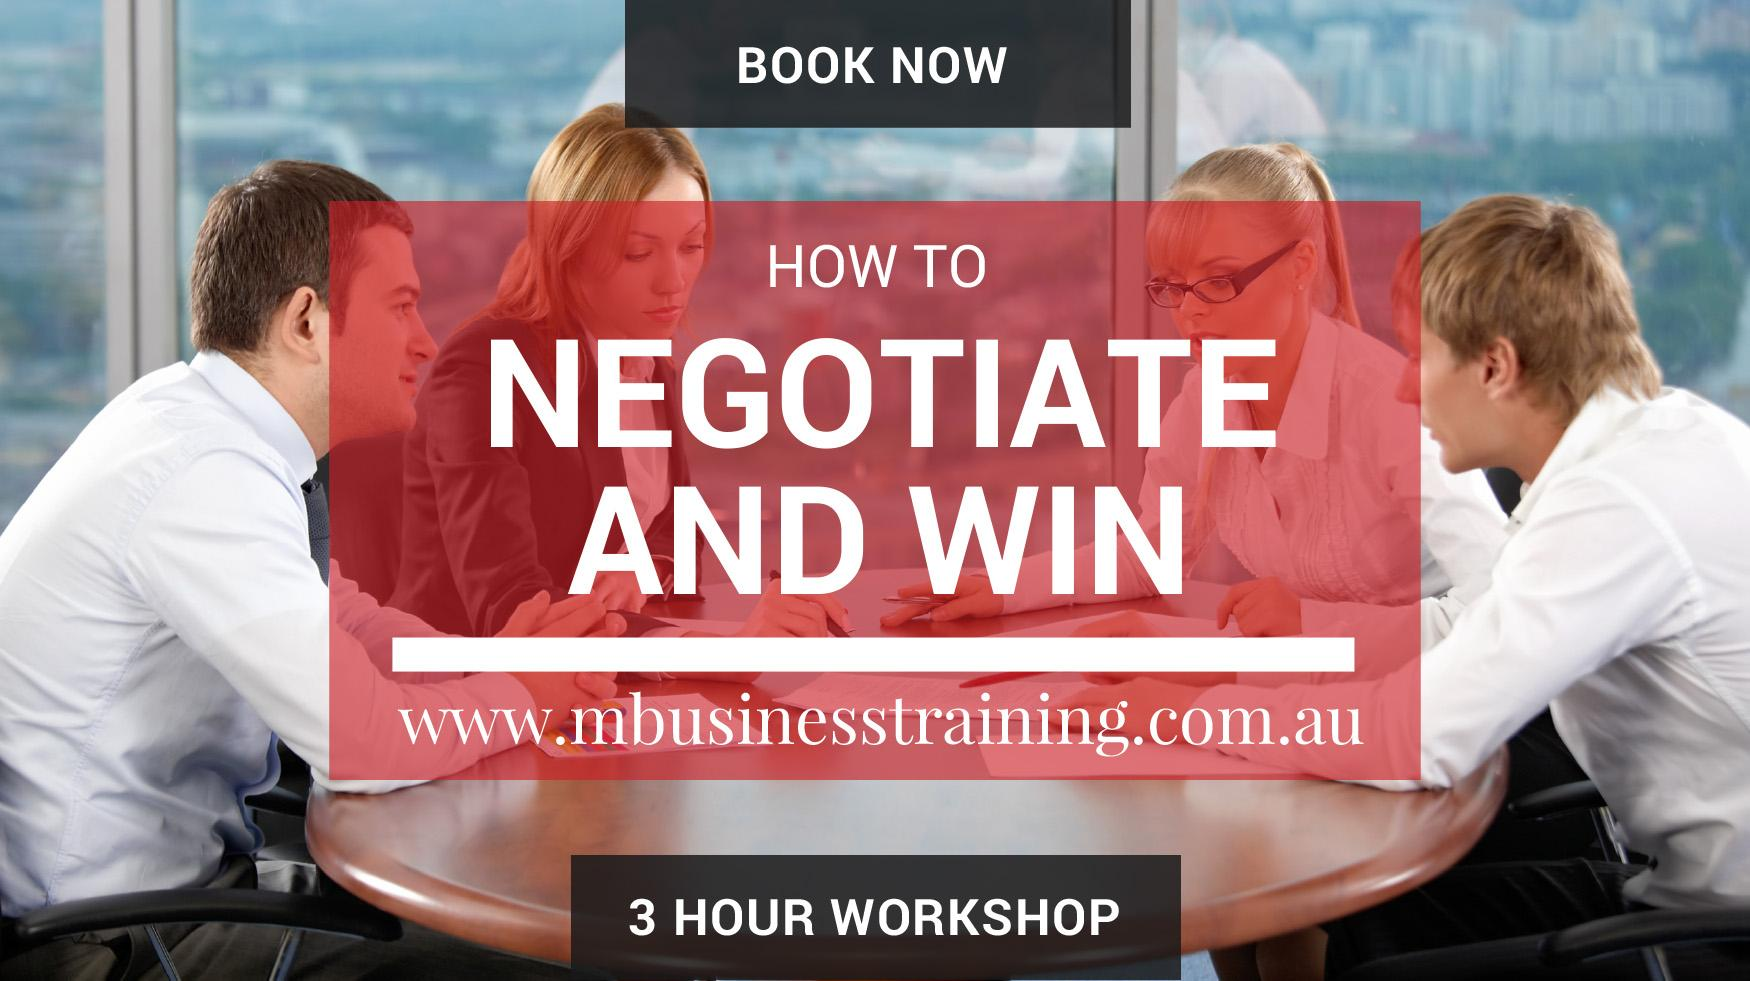 Negotiate and Win with M Business